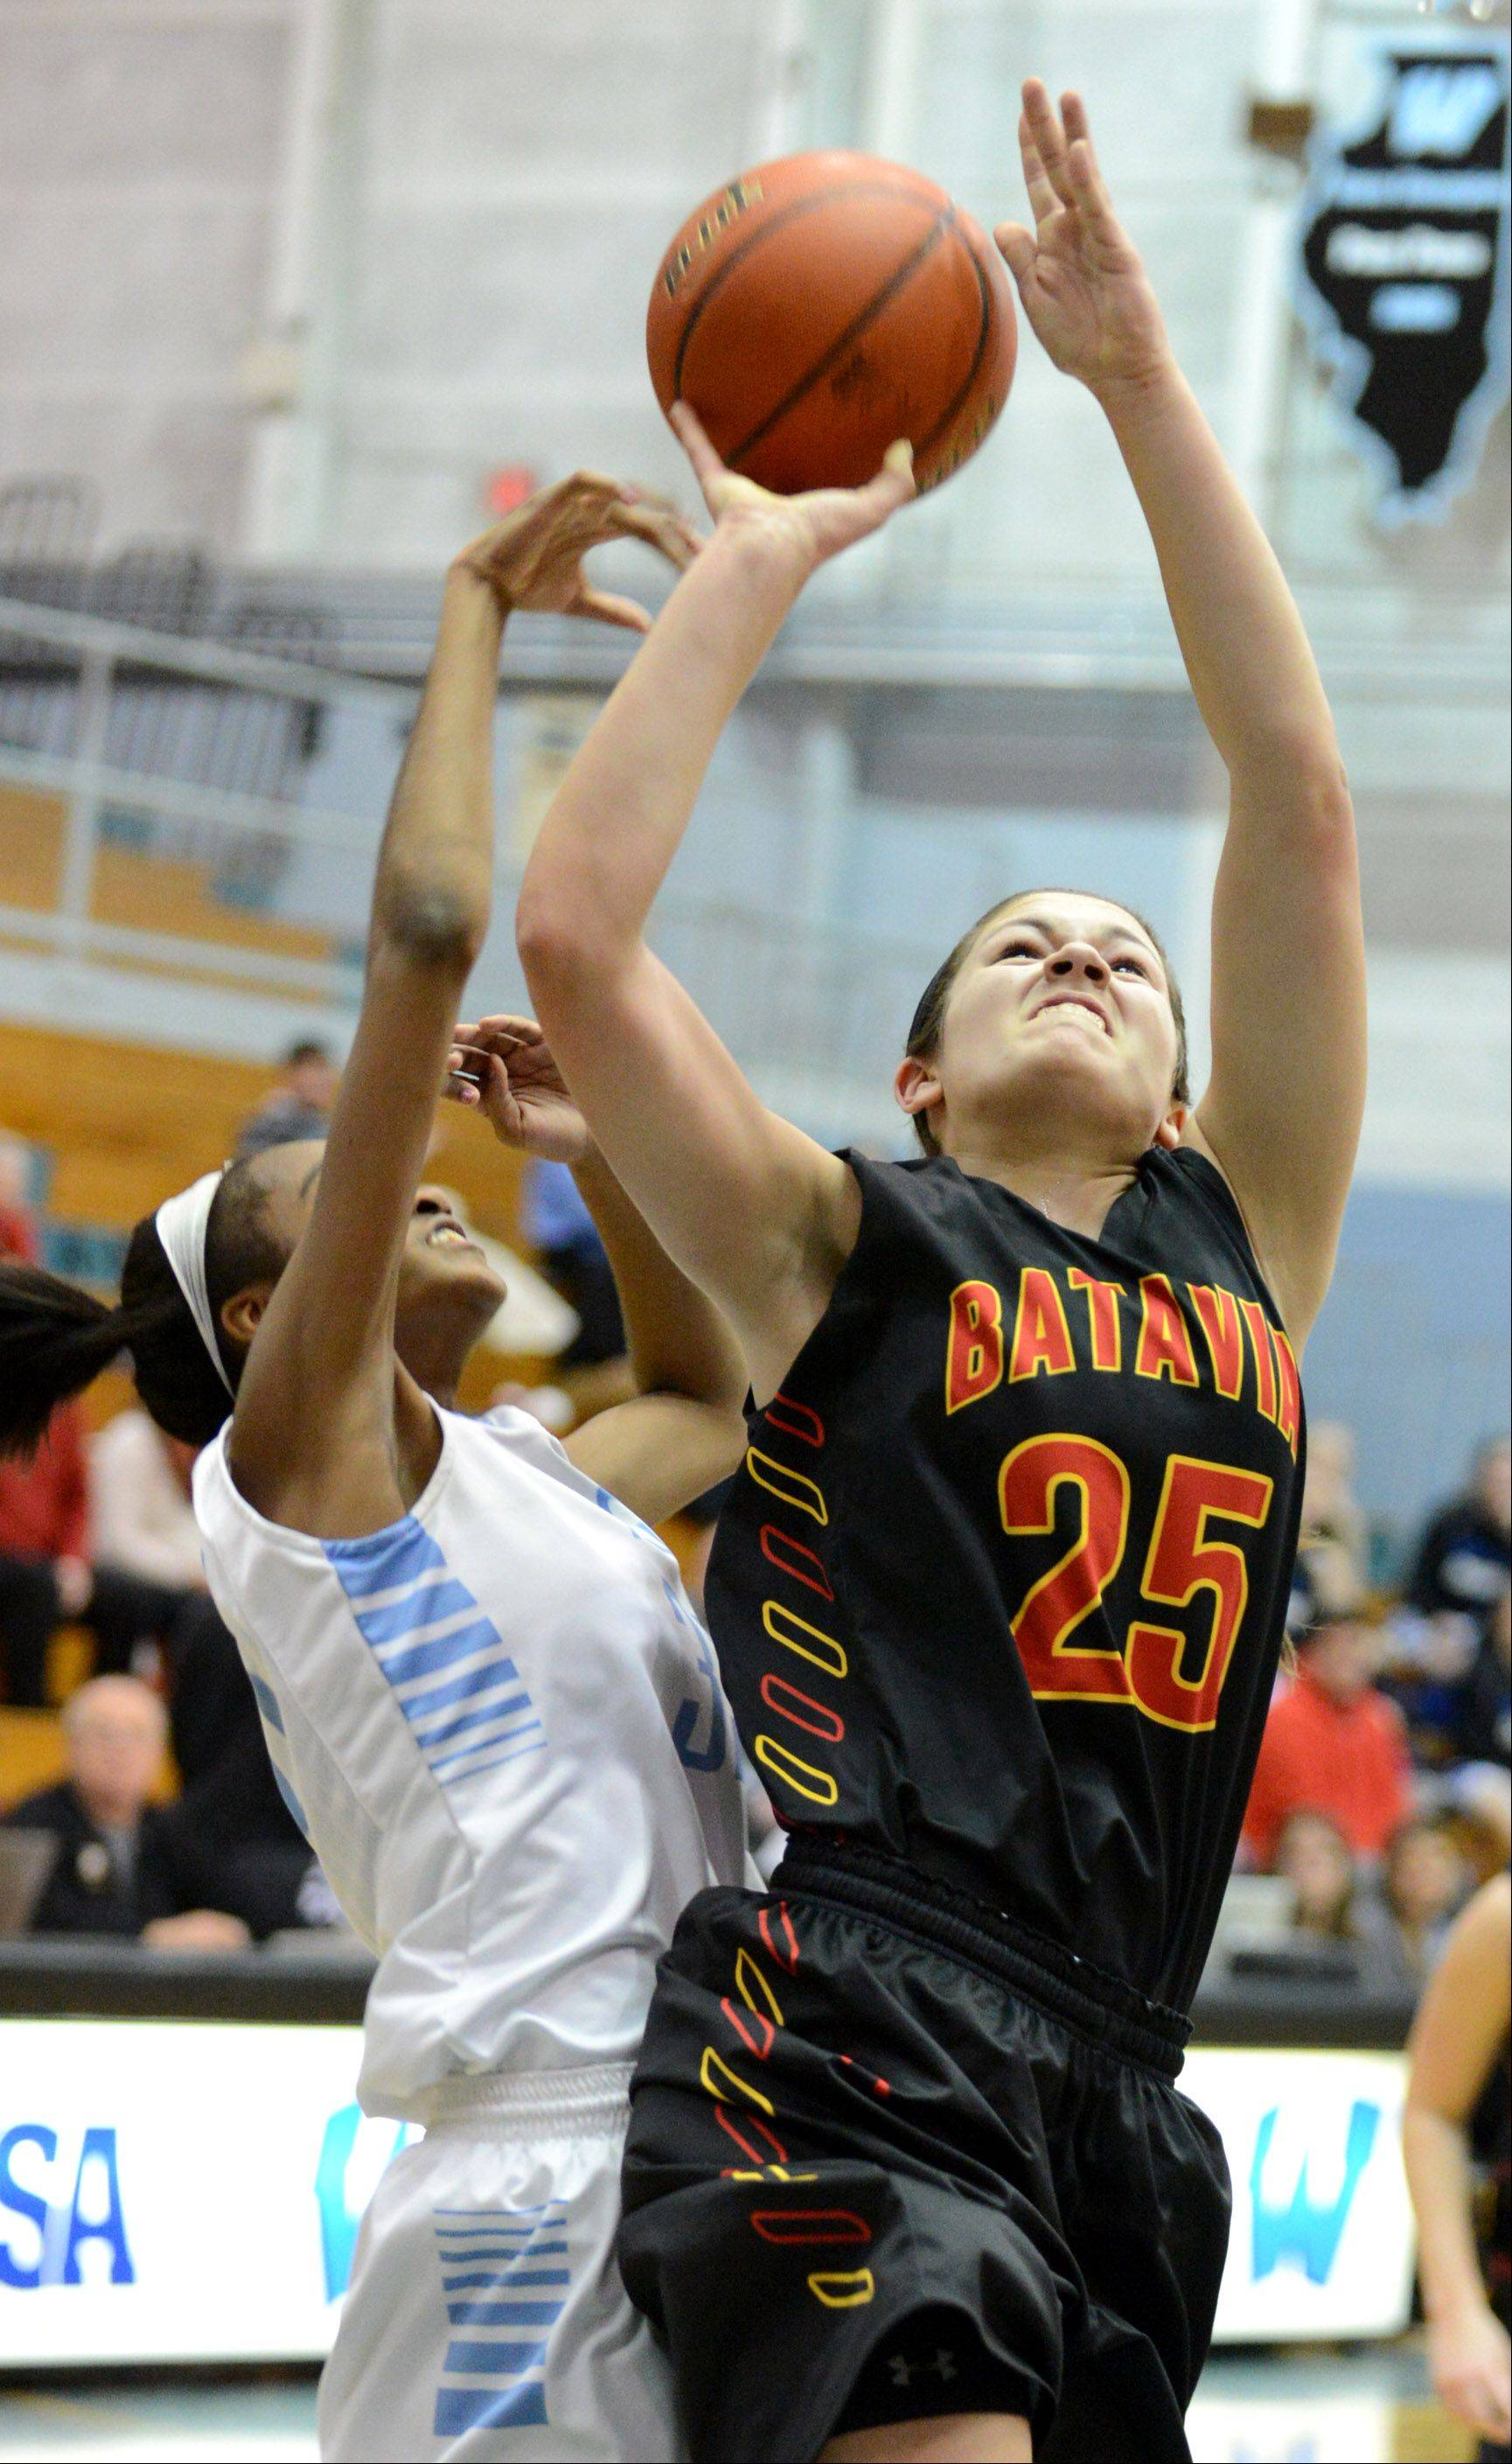 Batavia's Hannah Frazier goes up for a shot against Joliet Catholic's Ty Battle defending during Monday's game at the 24th annual McDonald's Shootout at Willowbrook High School in Villa Park.